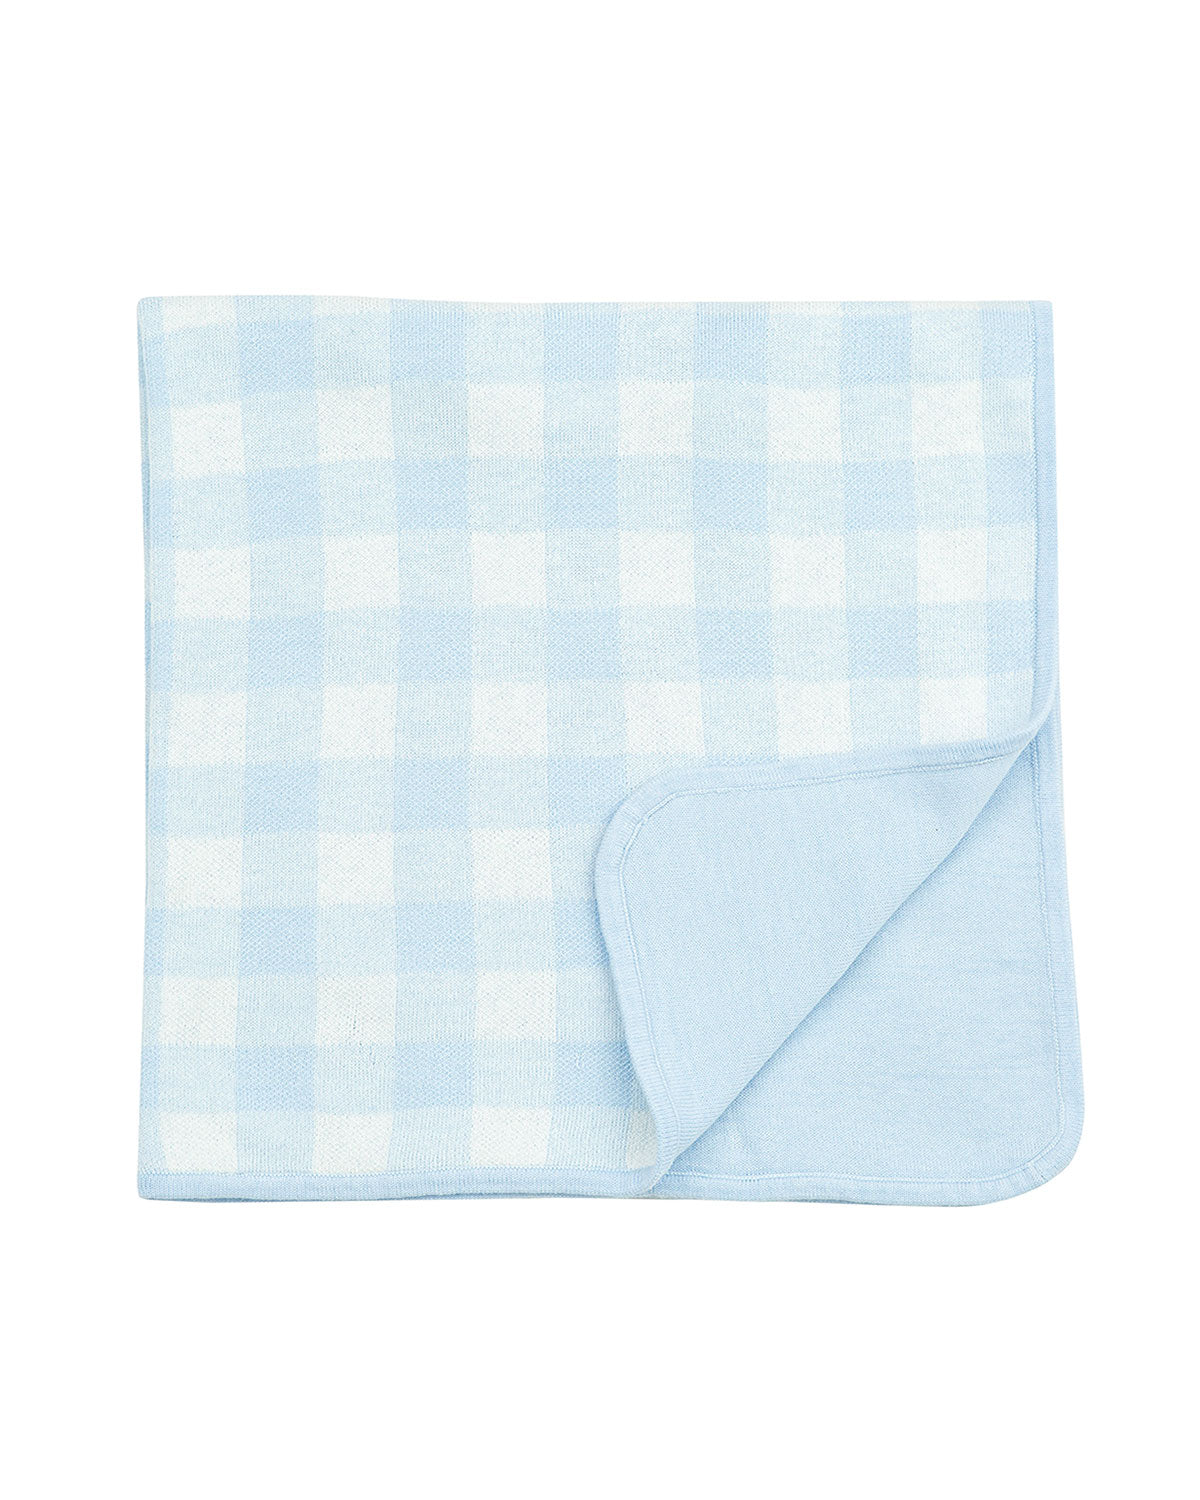 Knit Baby Blanket in Blue Gingham